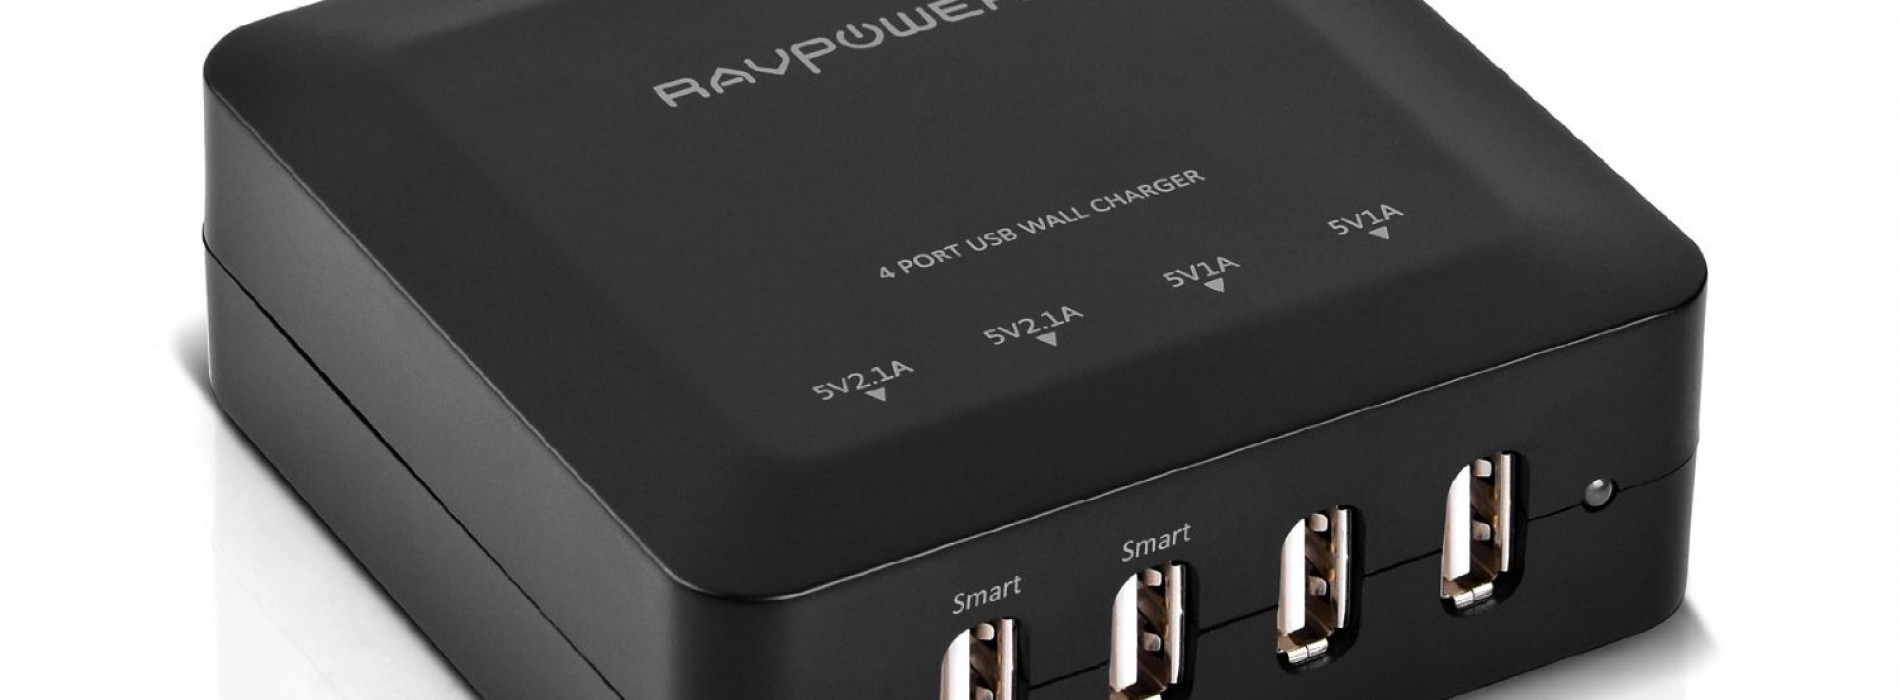 Accessory of the Day: RAVPower Bolt 4-Port Rapid Charging Station [72% OFF]